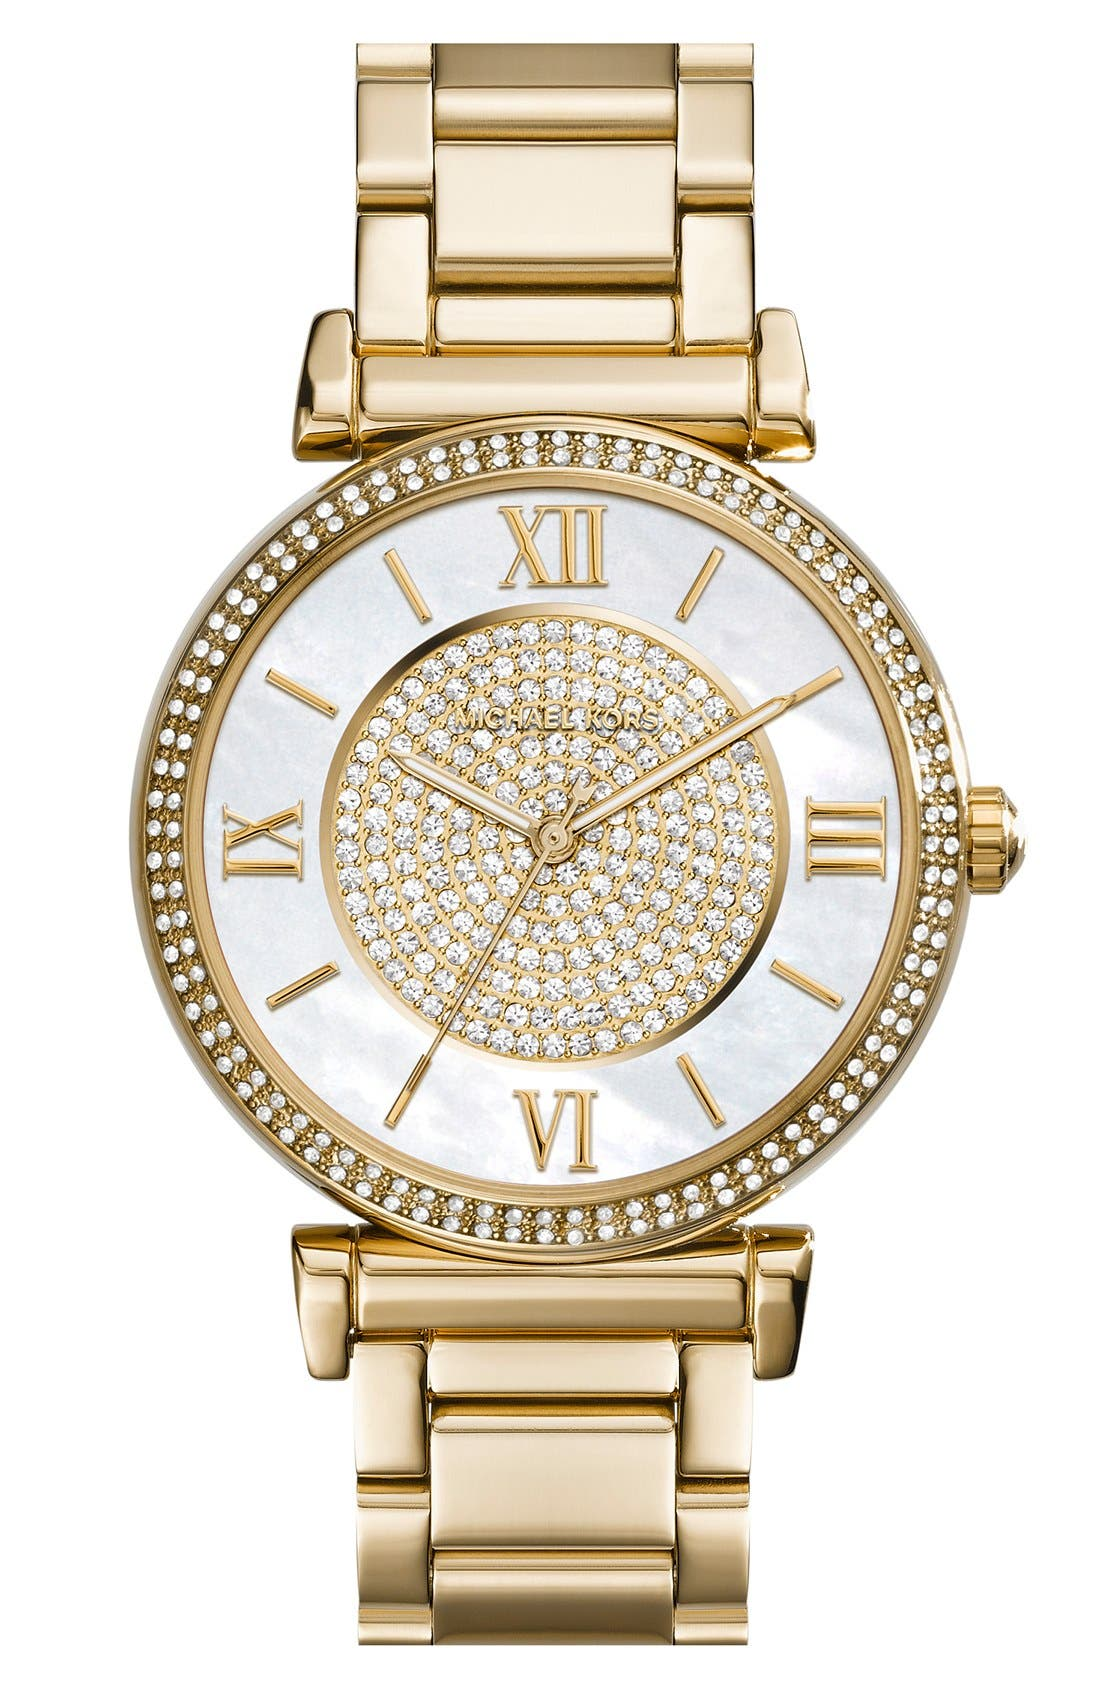 Alternate Image 1 Selected - Michael Kors 'Caitlin' Crystal Dial Bracelet Watch, 38mm